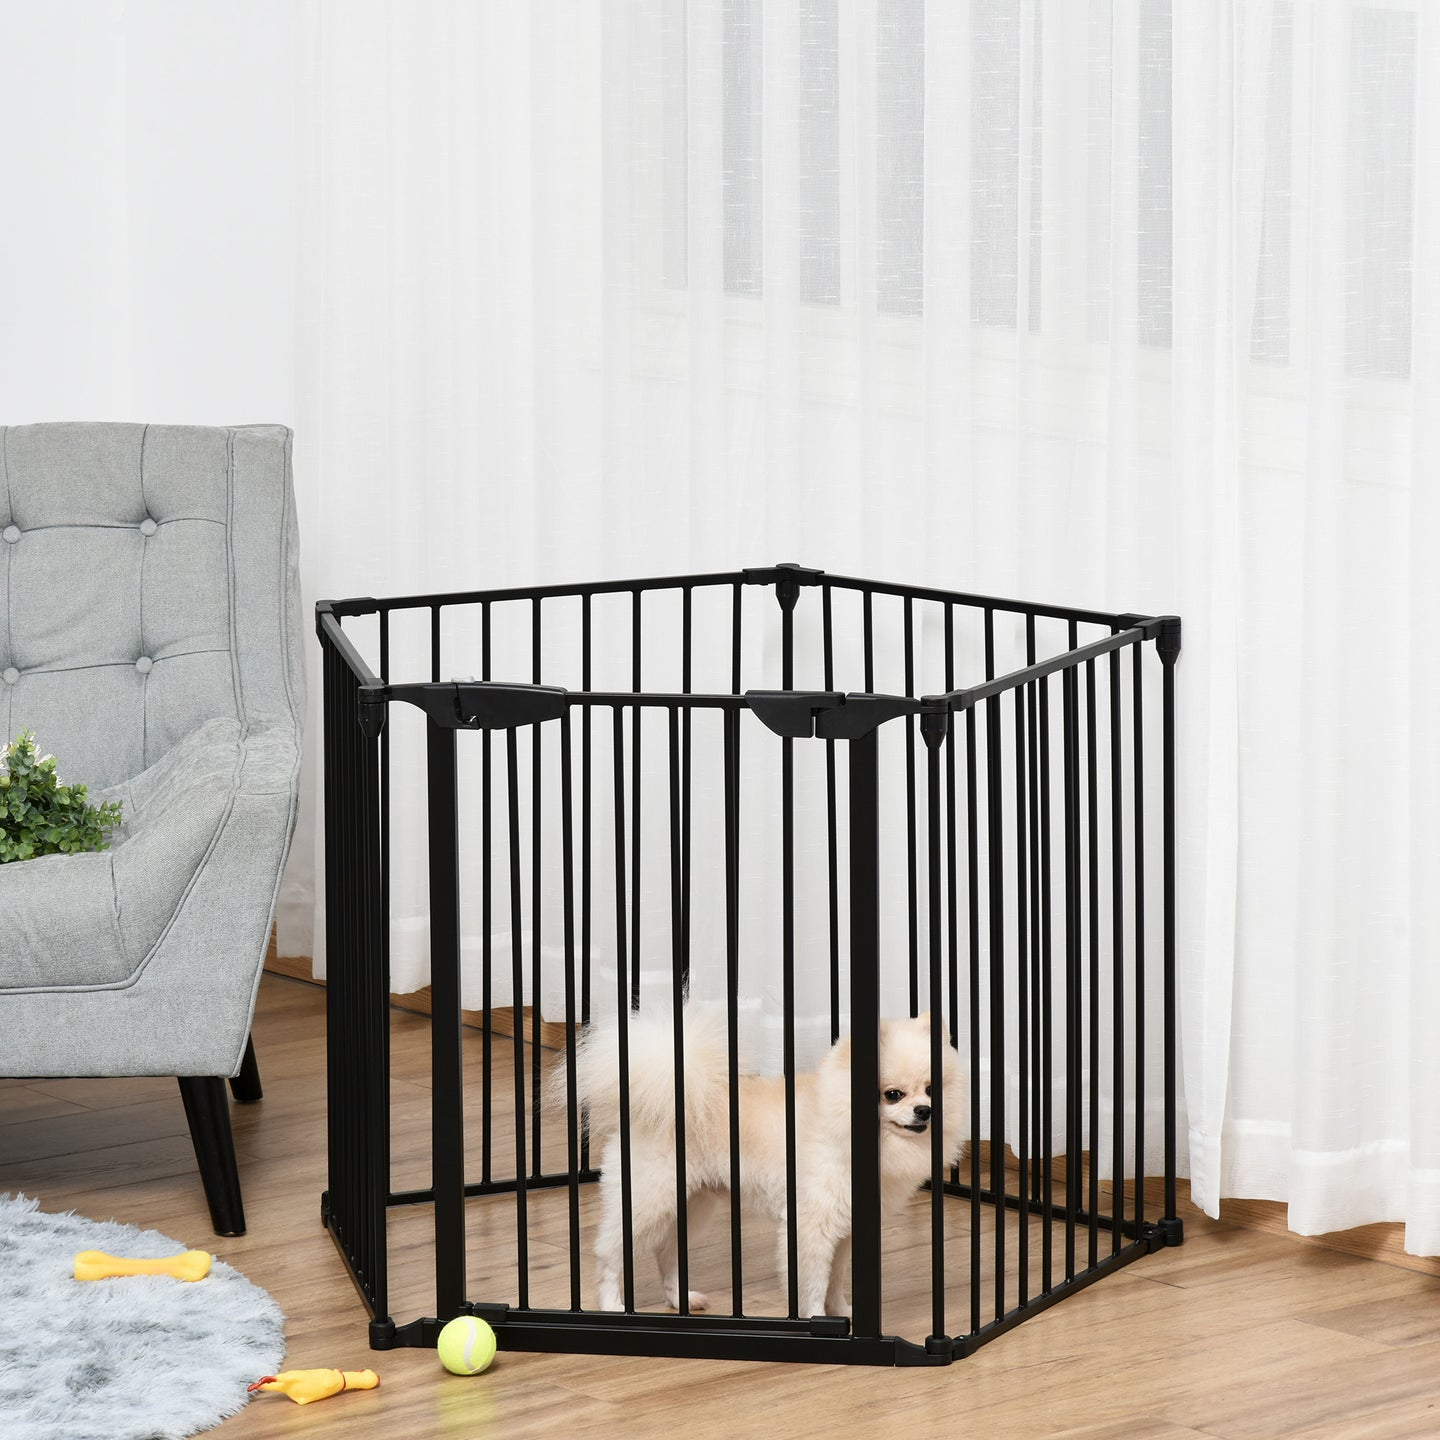 PawHut Pet Safety Gate 5-Panel Freestanding Playpen Fireplace Christmas Tree Metal Fence Stair Barrier Room Divider with Walk Through Door